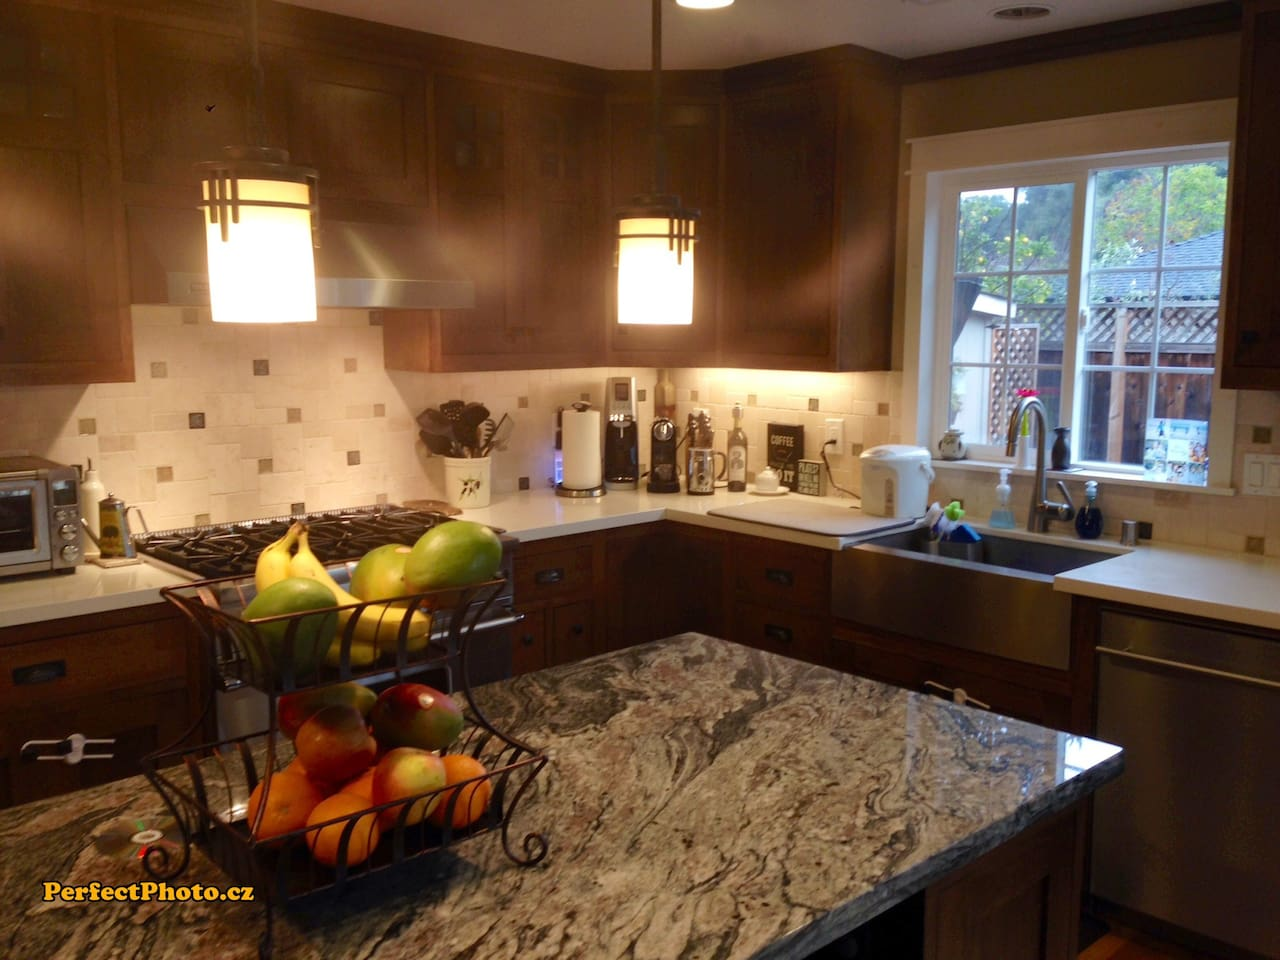 Open kitchen with large island (seats 4) and 6-burner chef's stove